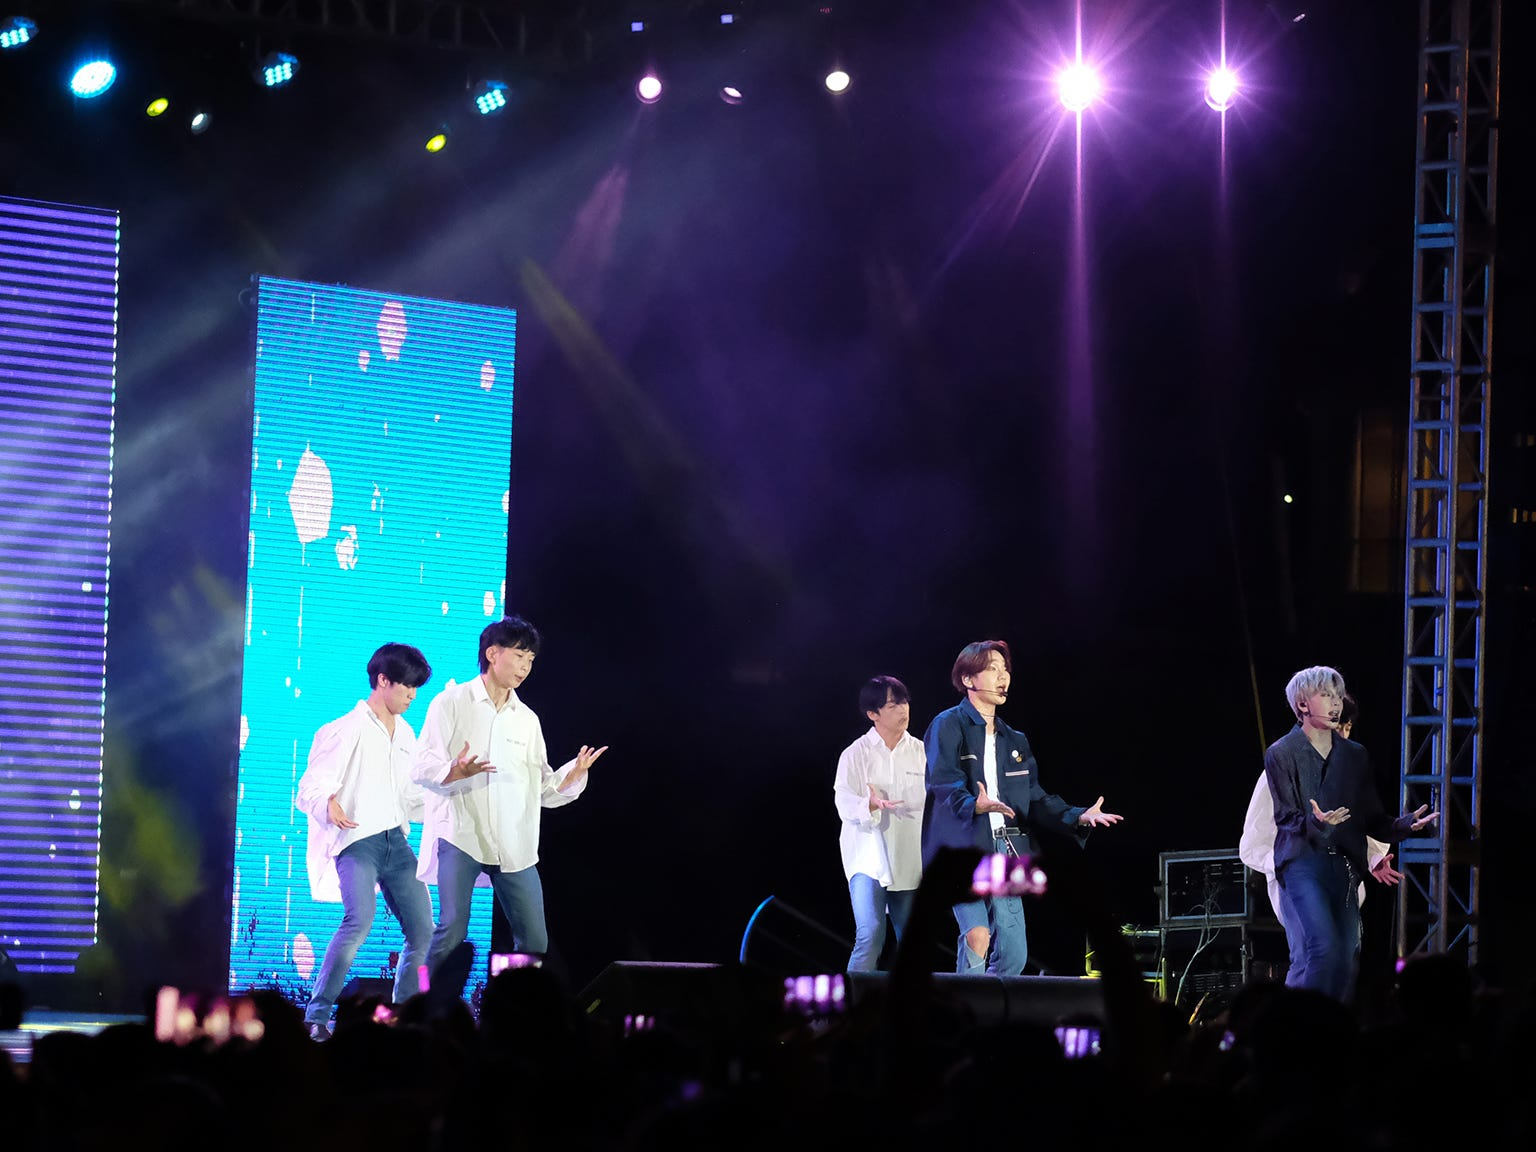 The South Korean K-pop group JBJ95 led by singers Kenta and Sanggyun perform at the MBC Music K-Pop Concert Saturday evening, December 1, 2018 at the Governor Joseph Flores Memorial Park.